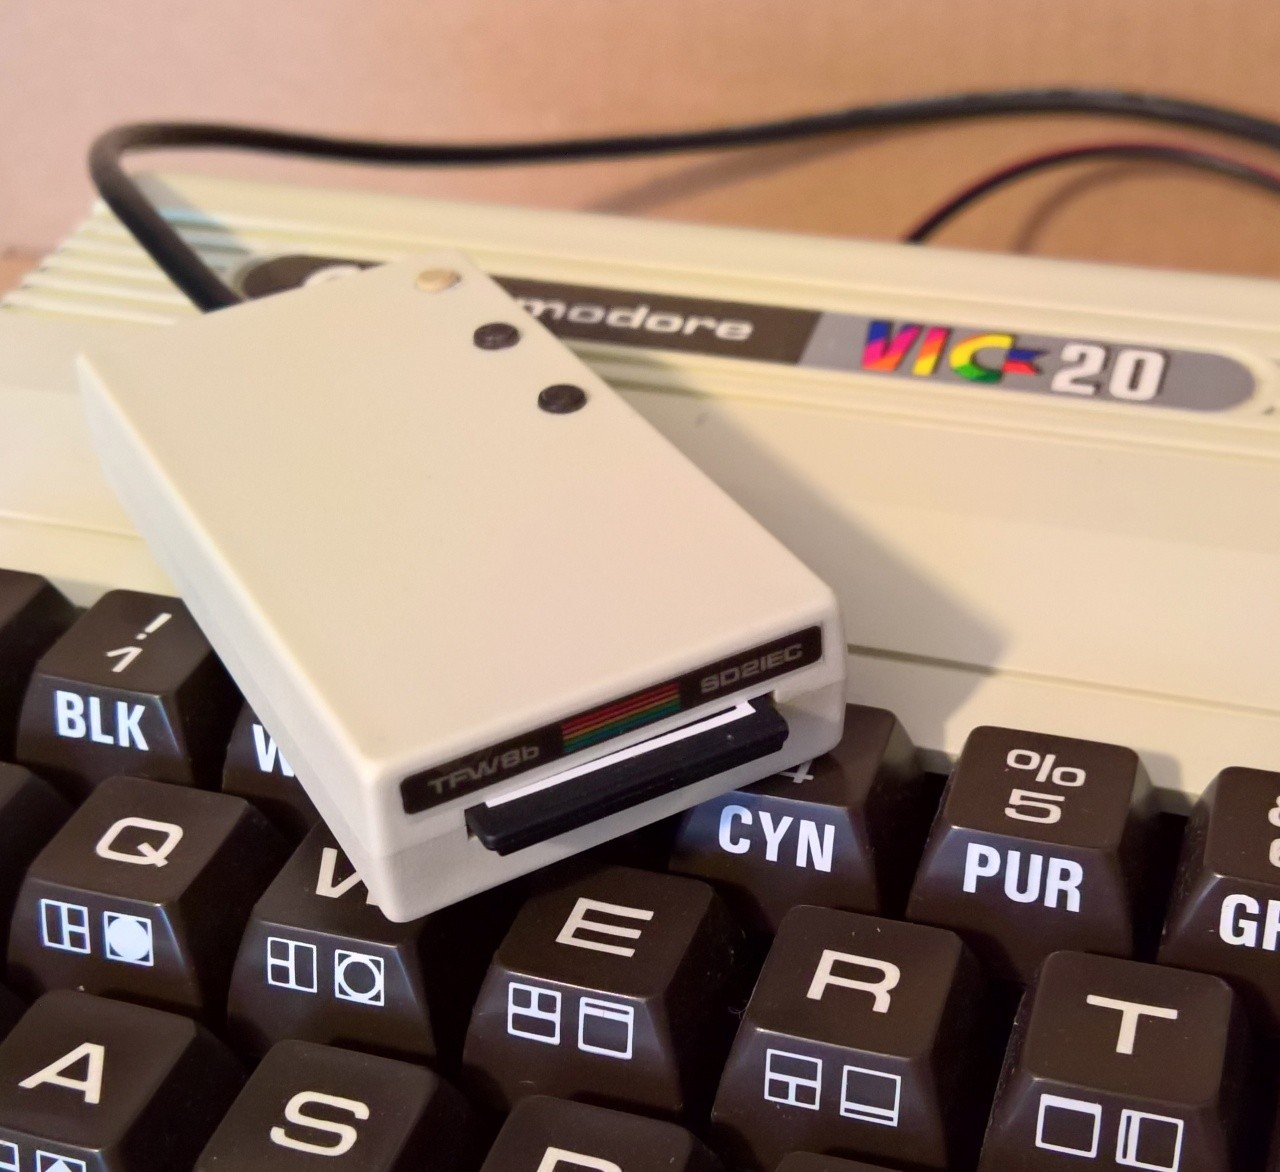 SD2IEC Made from recycled VIC20 ABS plastic